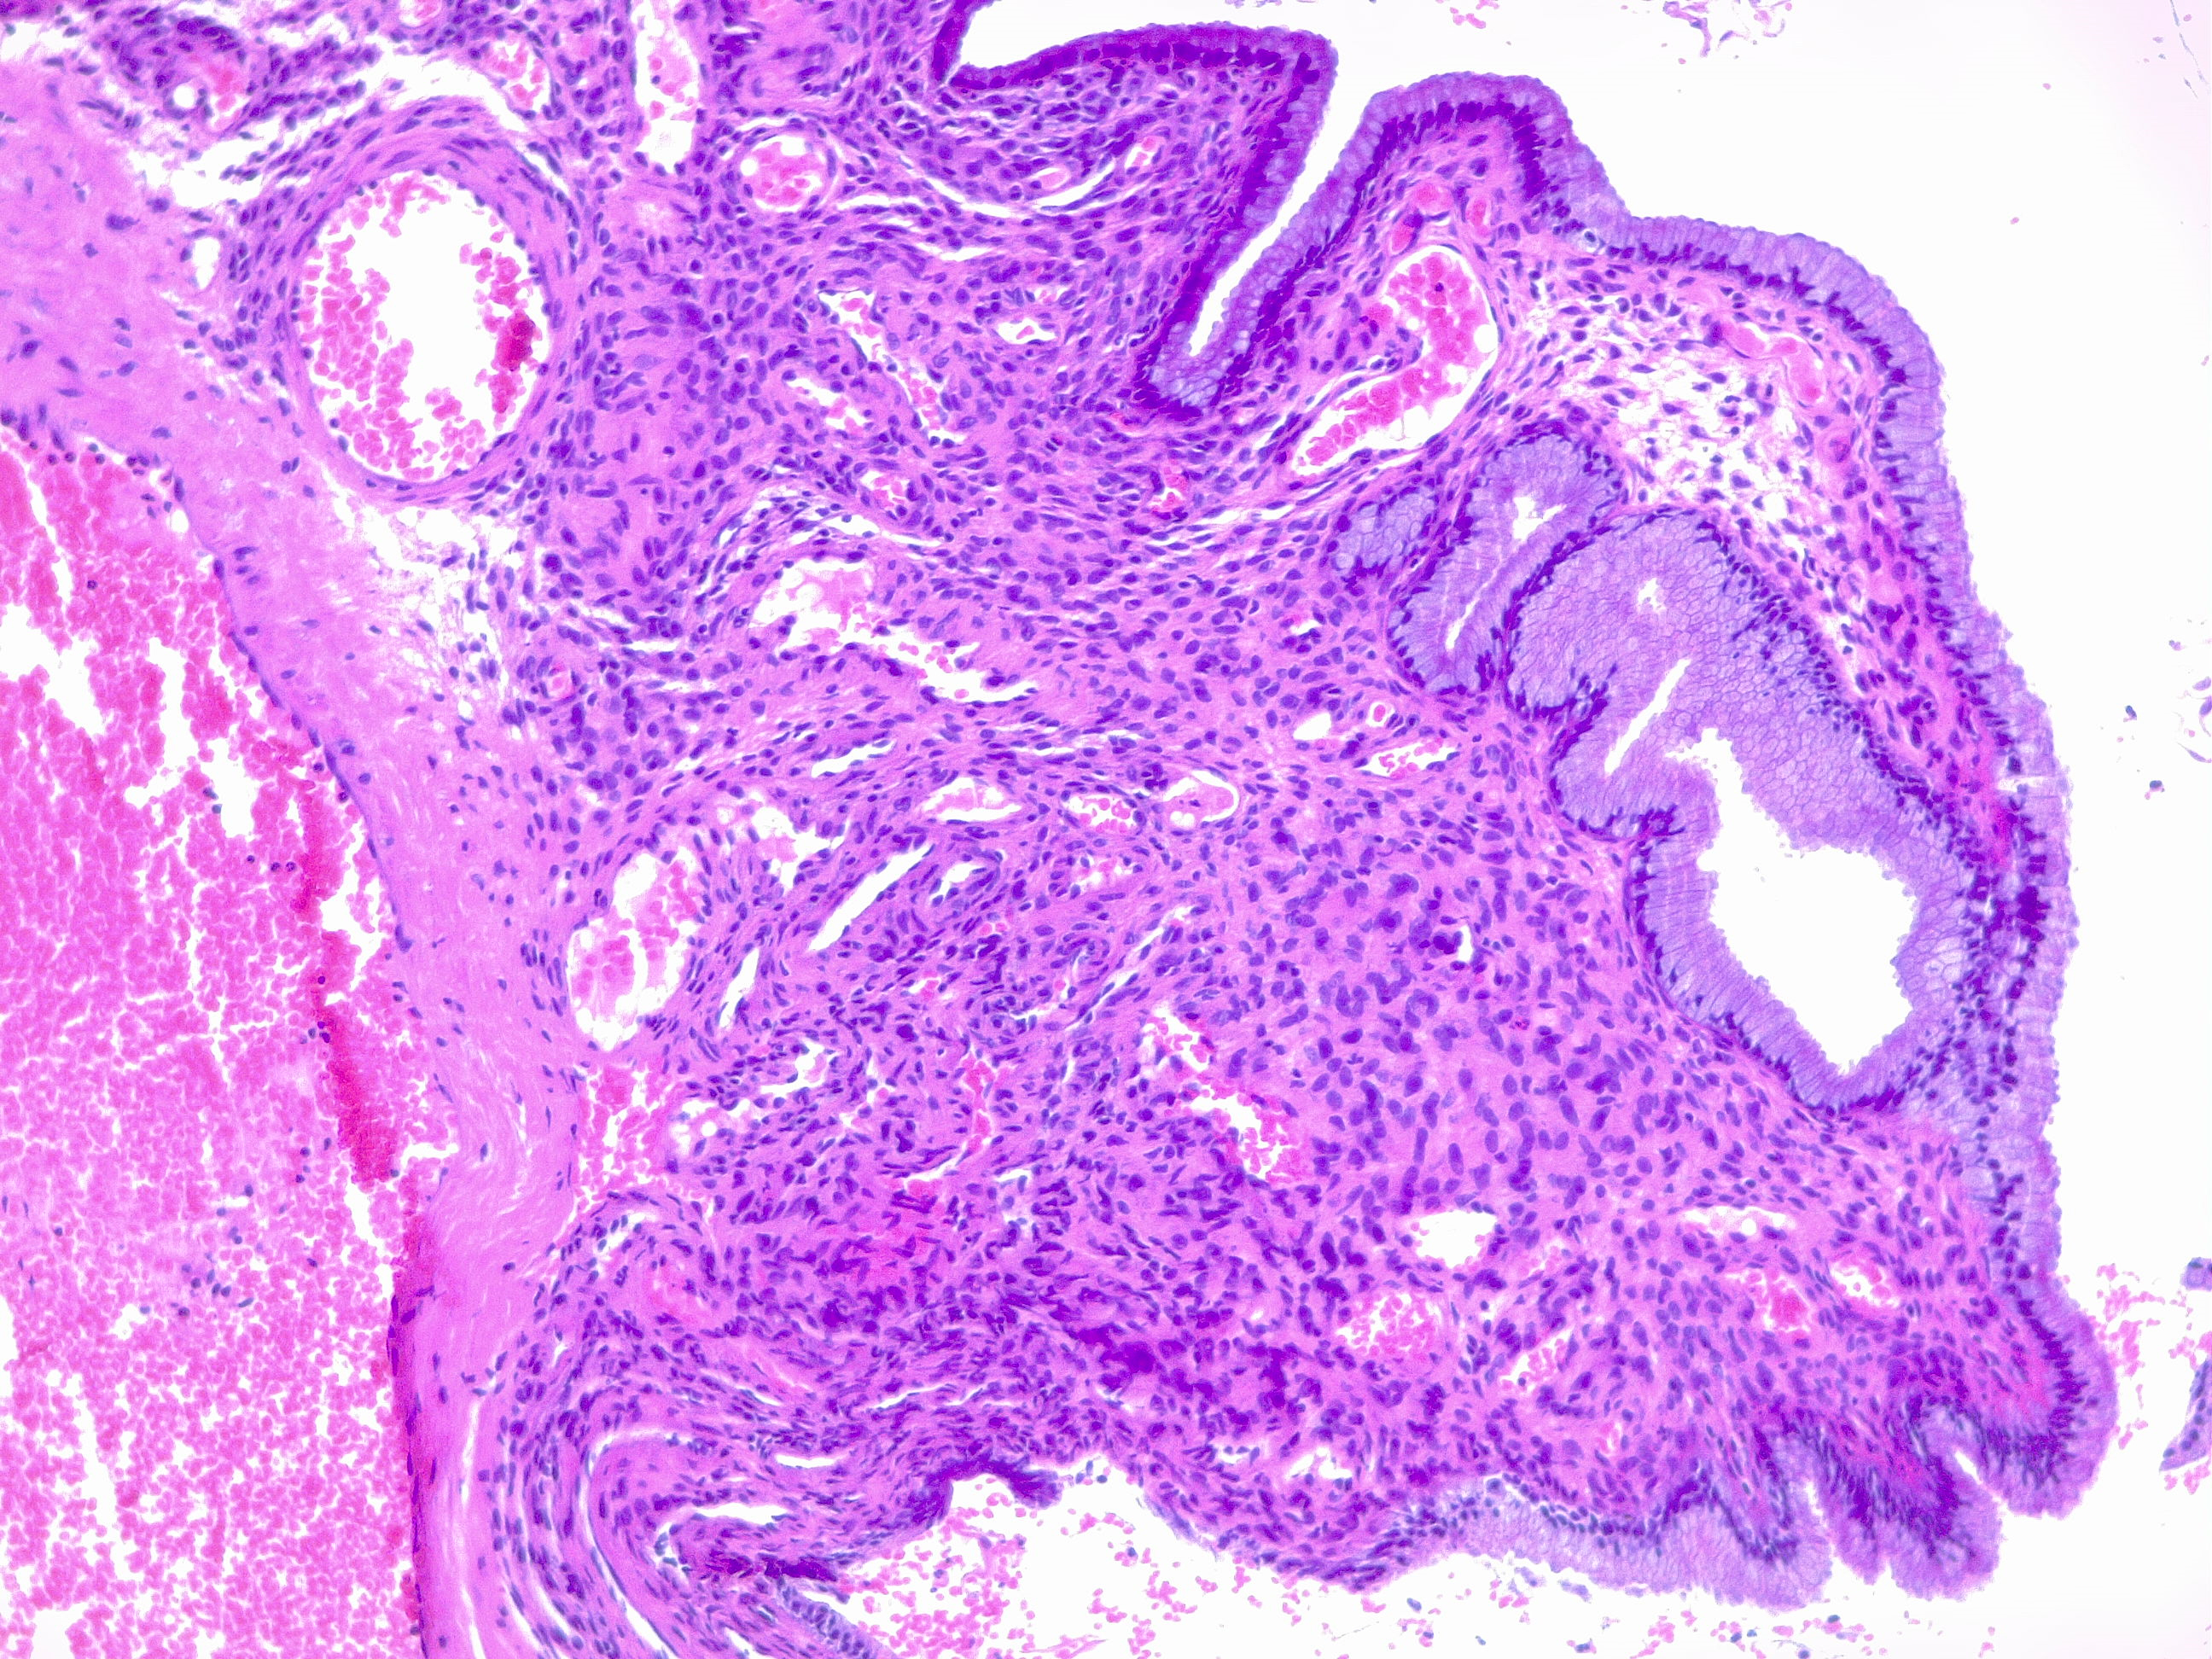 Endocervical polyp. Cervical polyps are common in reproductive years and can be found in cases of ectropion. In this image of the cervical mucosa typical endocervical glands with aedematous stroma with clear congestion.